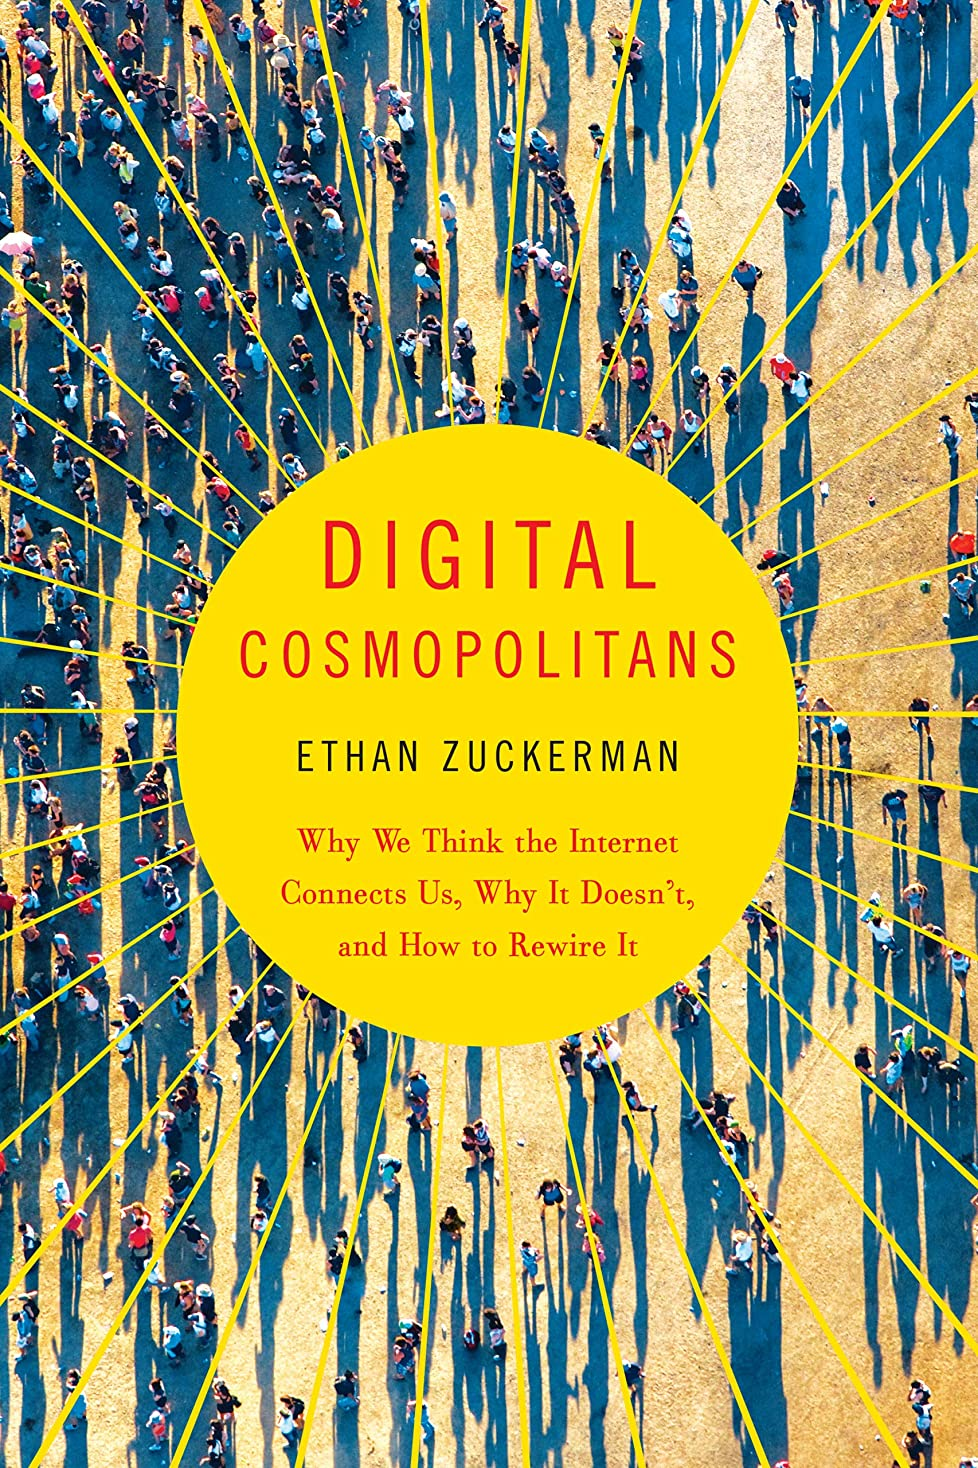 家無能単なるDigital Cosmopolitans: Why We Think the Internet Connects Us, Why It Doesn't, and How to Rewire It (English Edition)